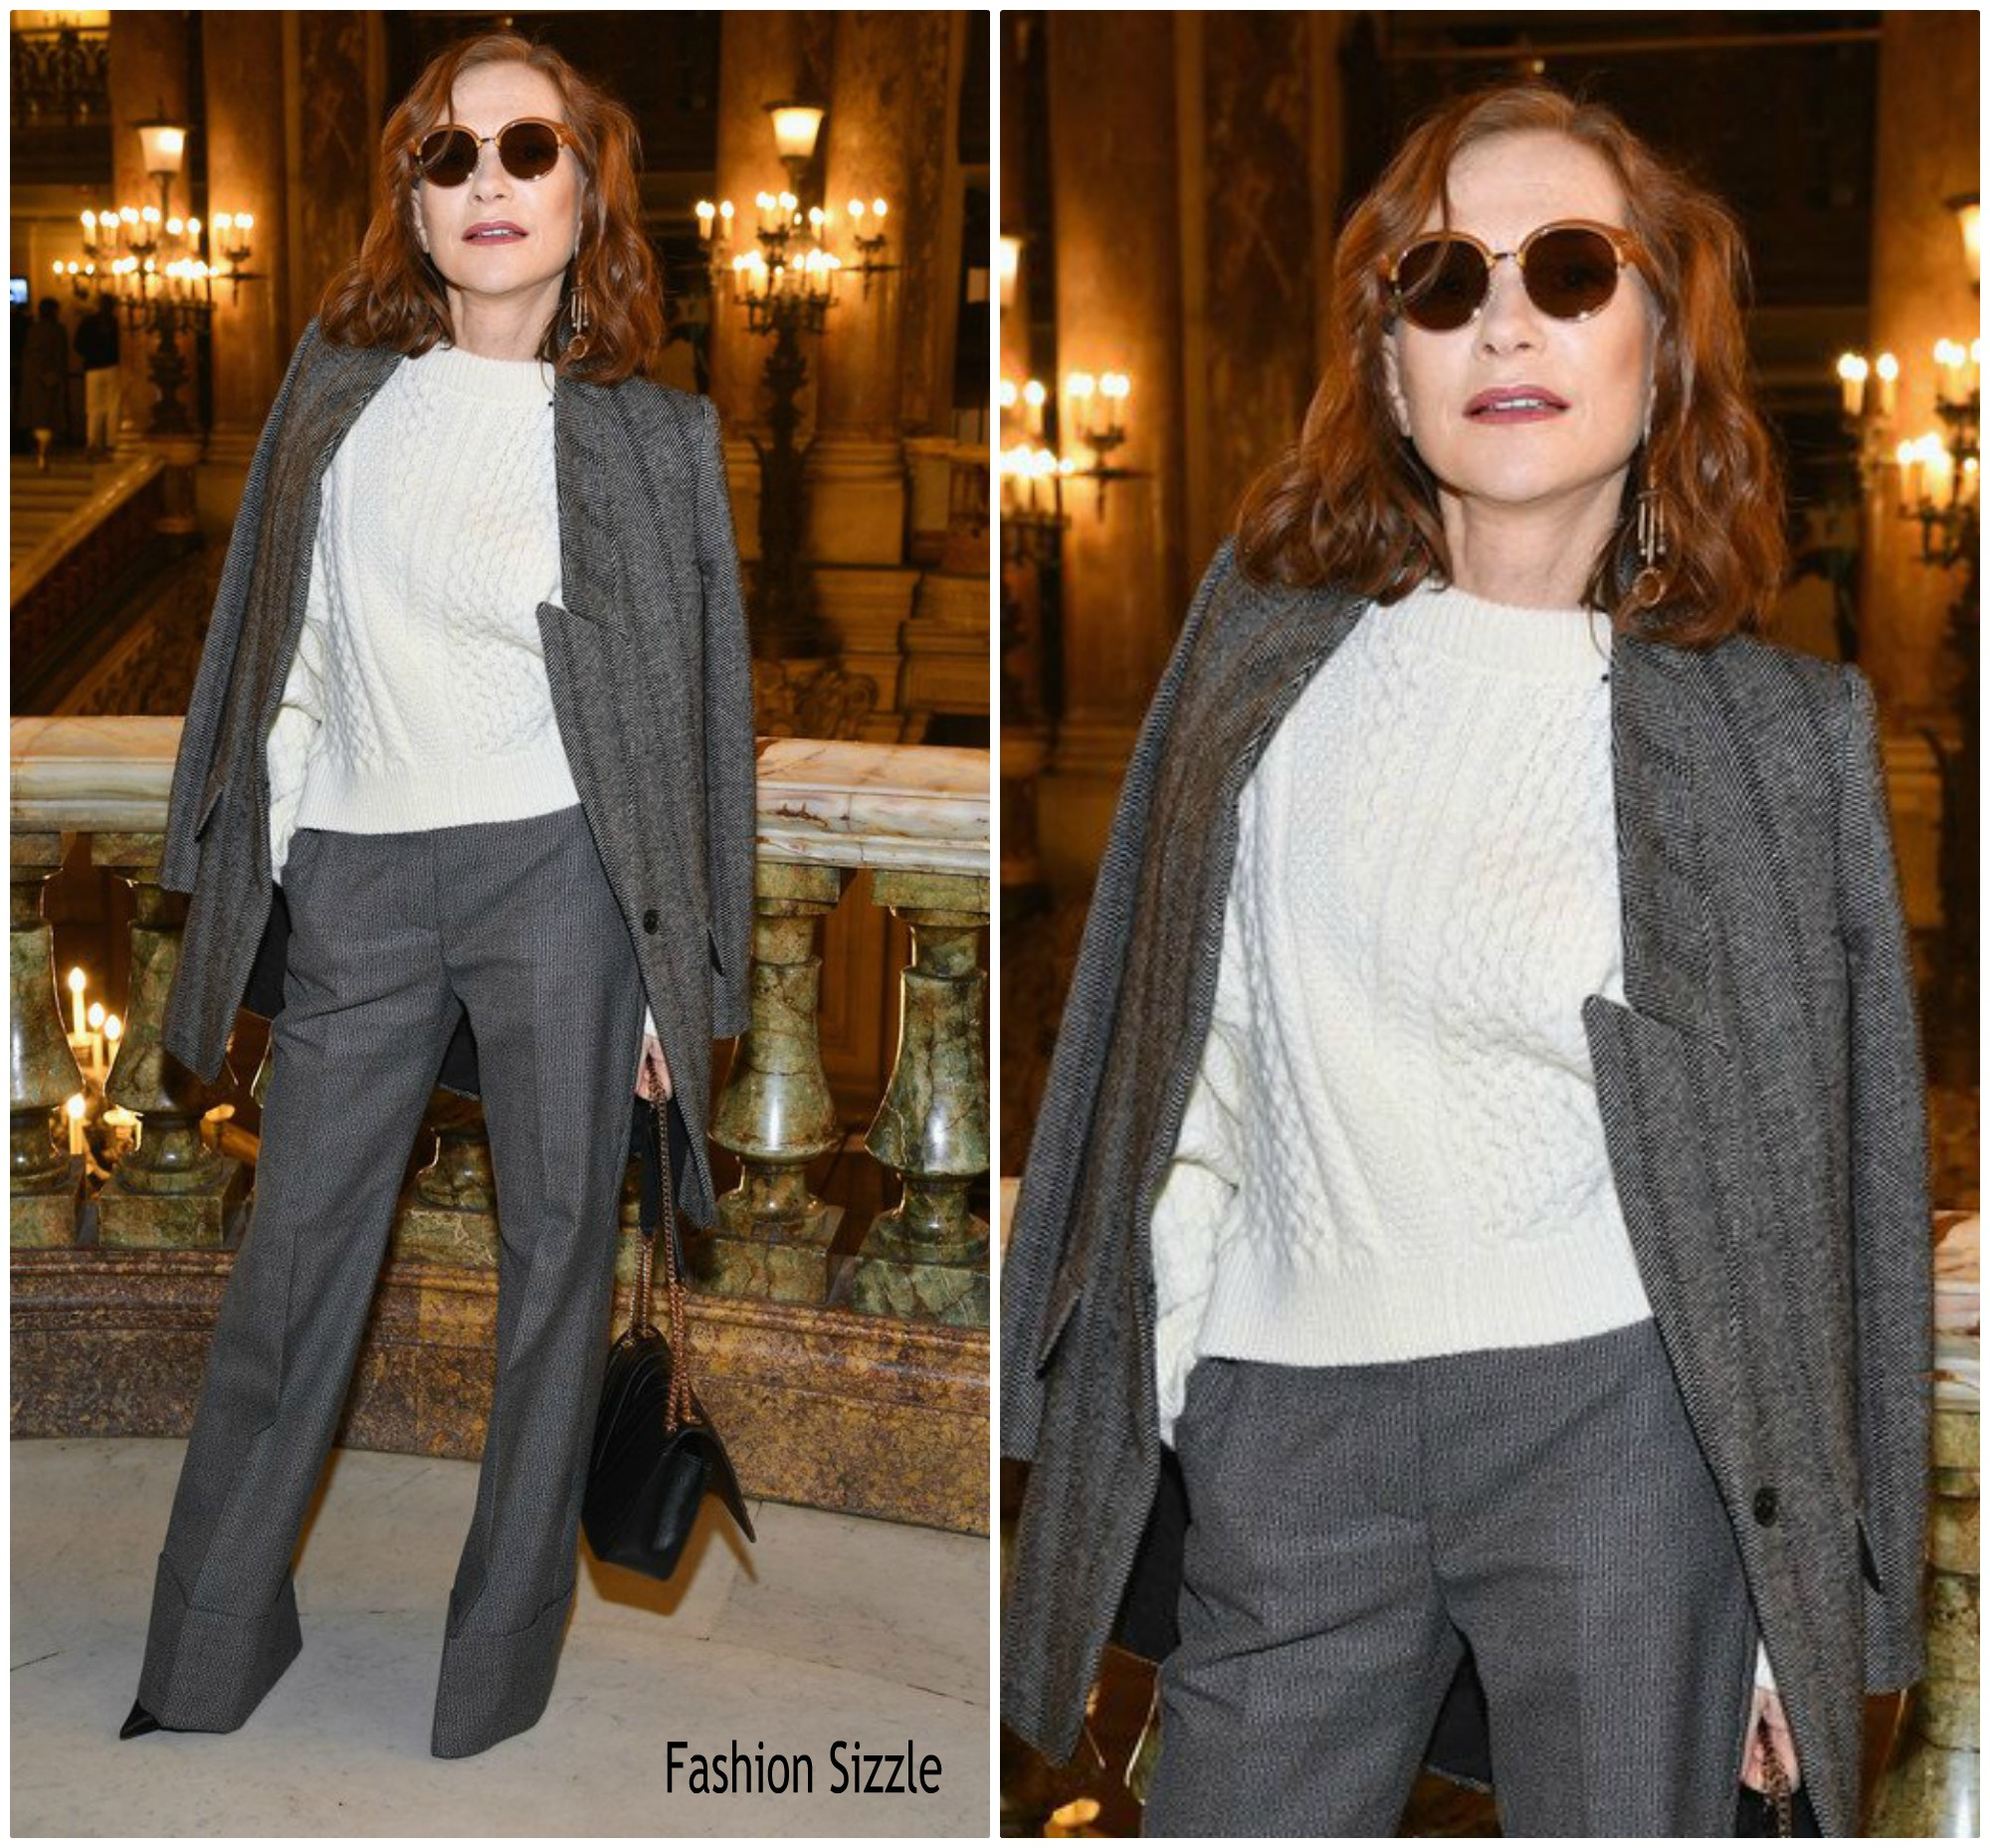 isabelle-huppert-in-stella-mccartney-stella-mccartney-spring-2019-Fashion-show